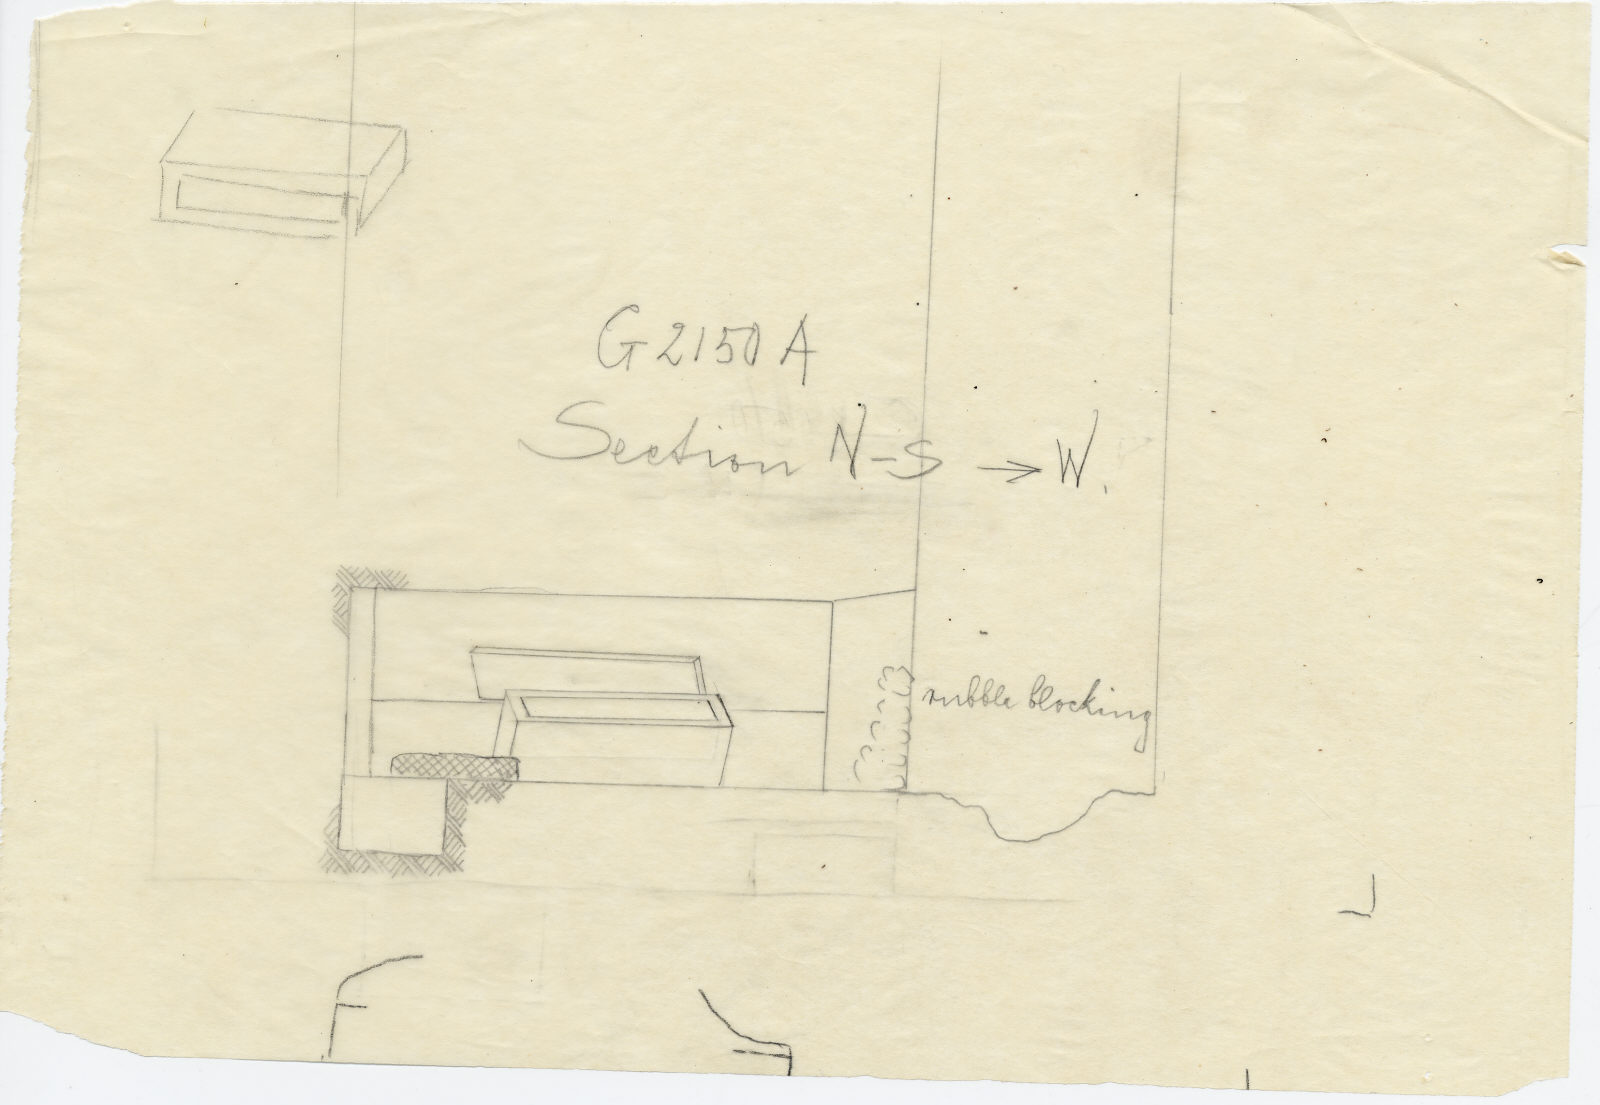 Drawings: G 2150, Shaft A